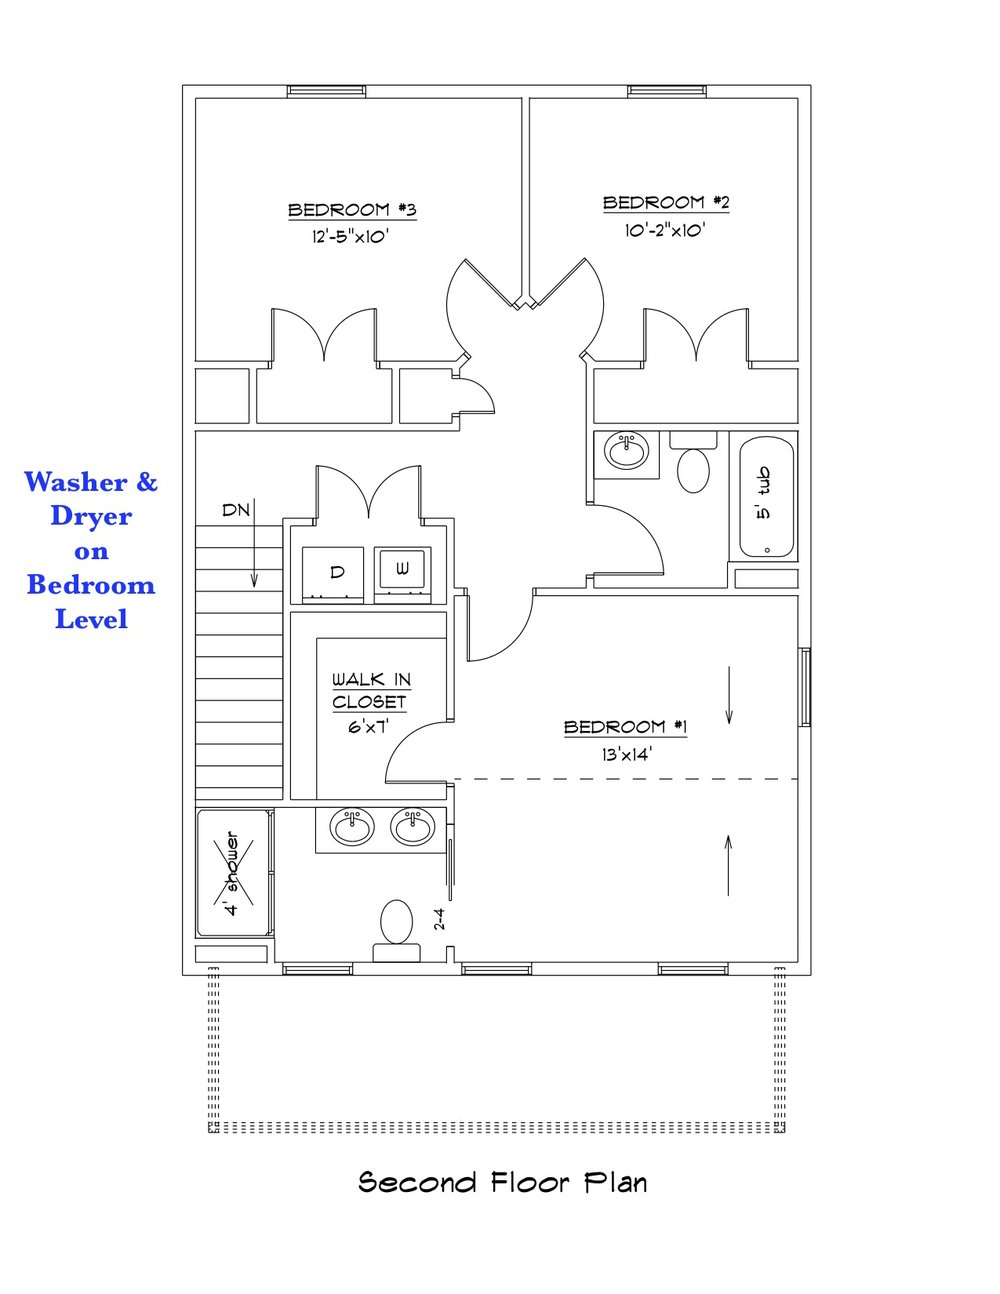 301_Weiner_Ave_Brochure_2nd_Floor.jpg